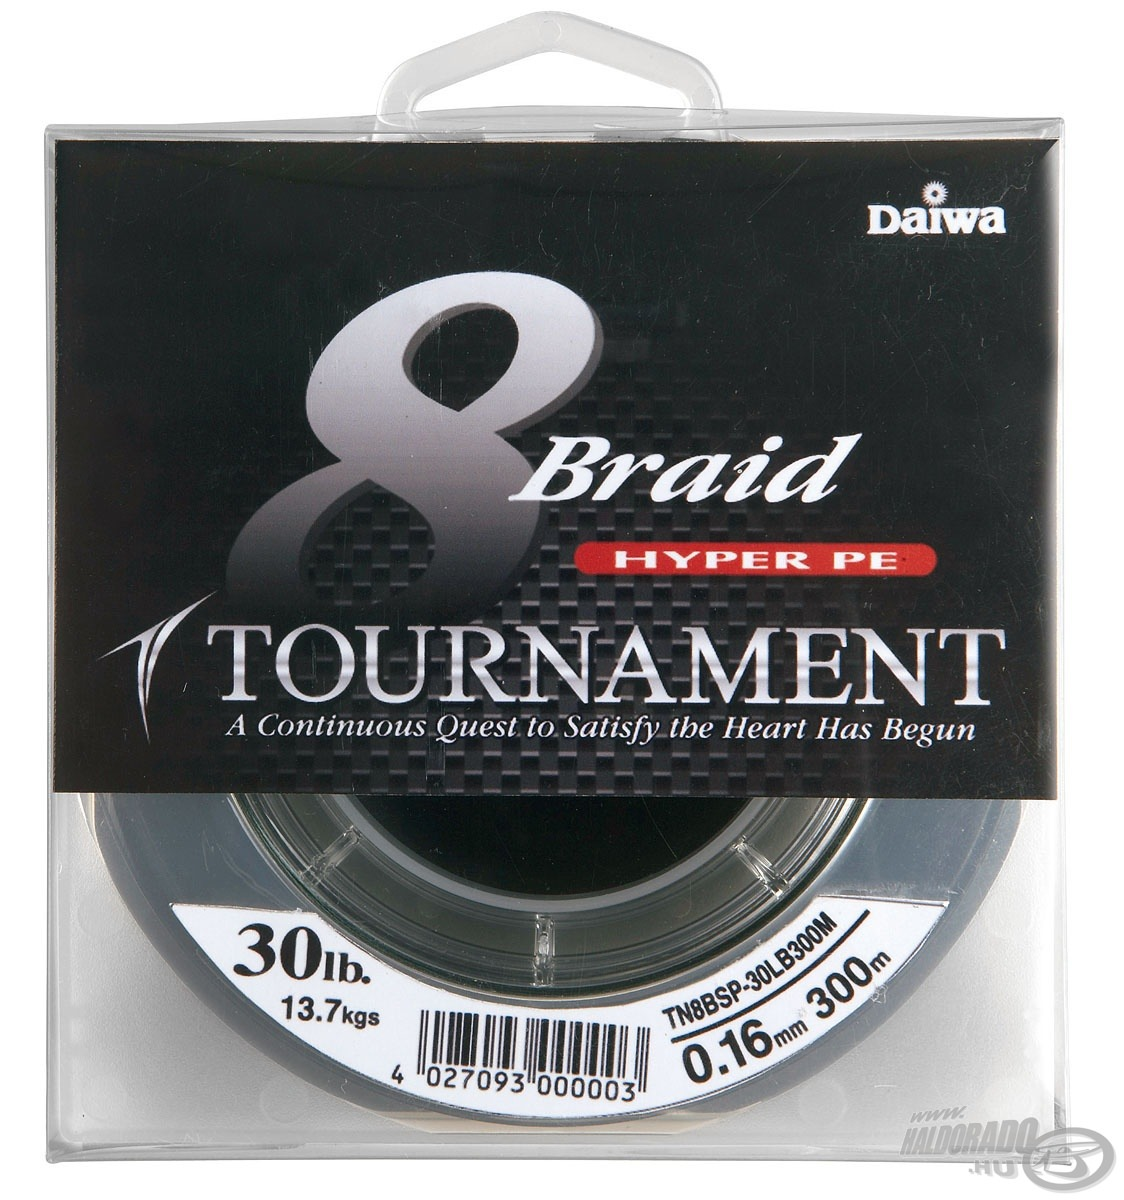 DAIWA Tournament 8X Braid 300 m 16990 helyett 13890Ft